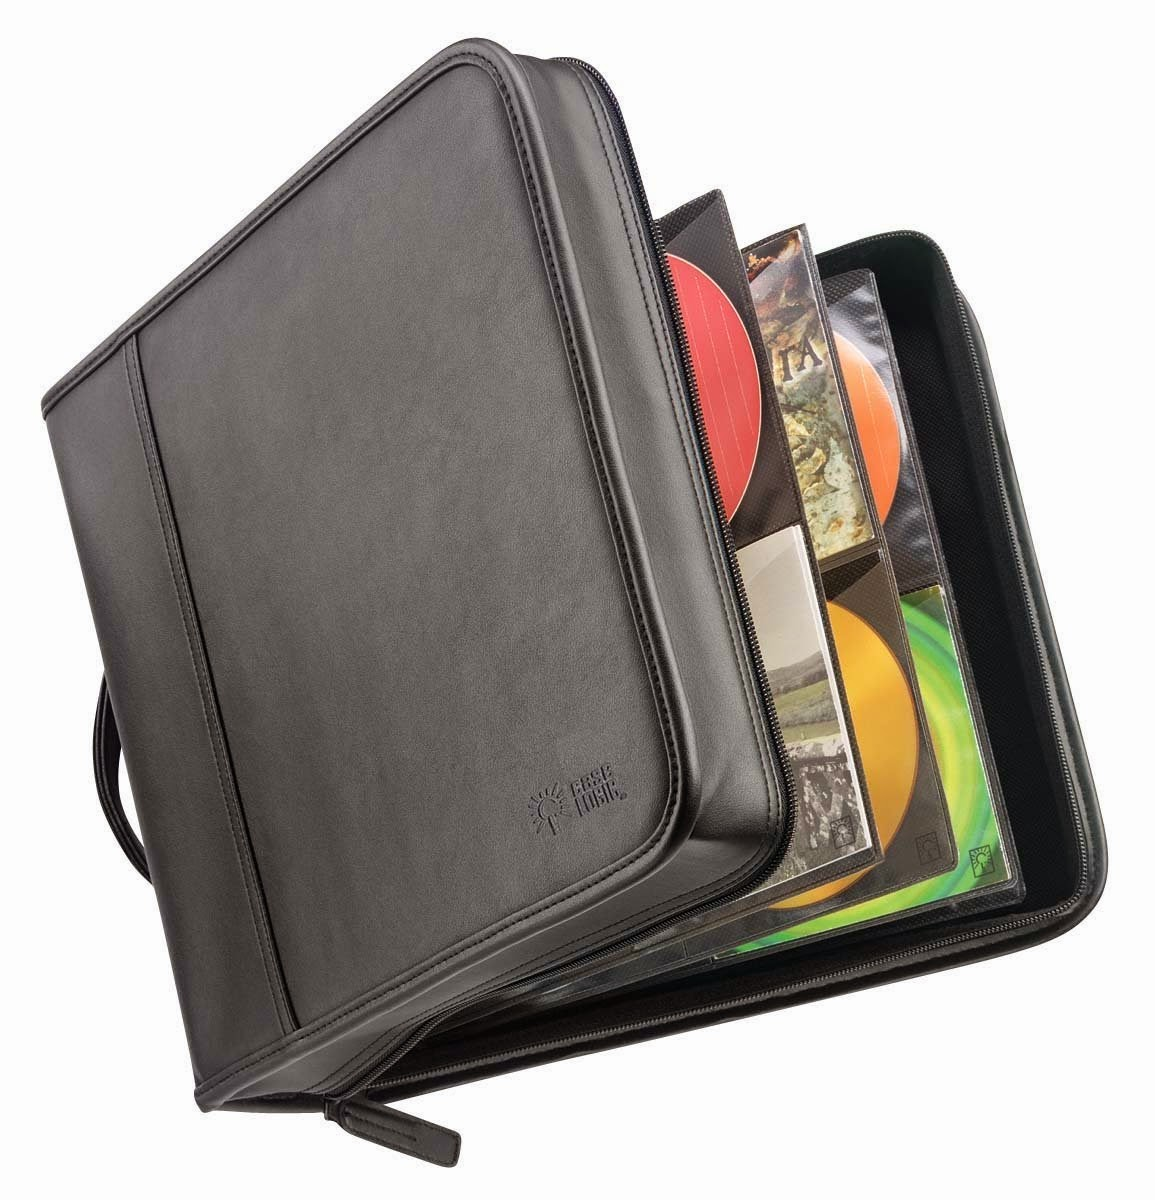 http://www.amazon.com/Case-Logic-KSW-32-Capacity-Prosleeve/dp/B00005ATMI/ref=sr_1_8?ie=UTF8&qid=1403748939&sr=8-8&keywords=cd+case